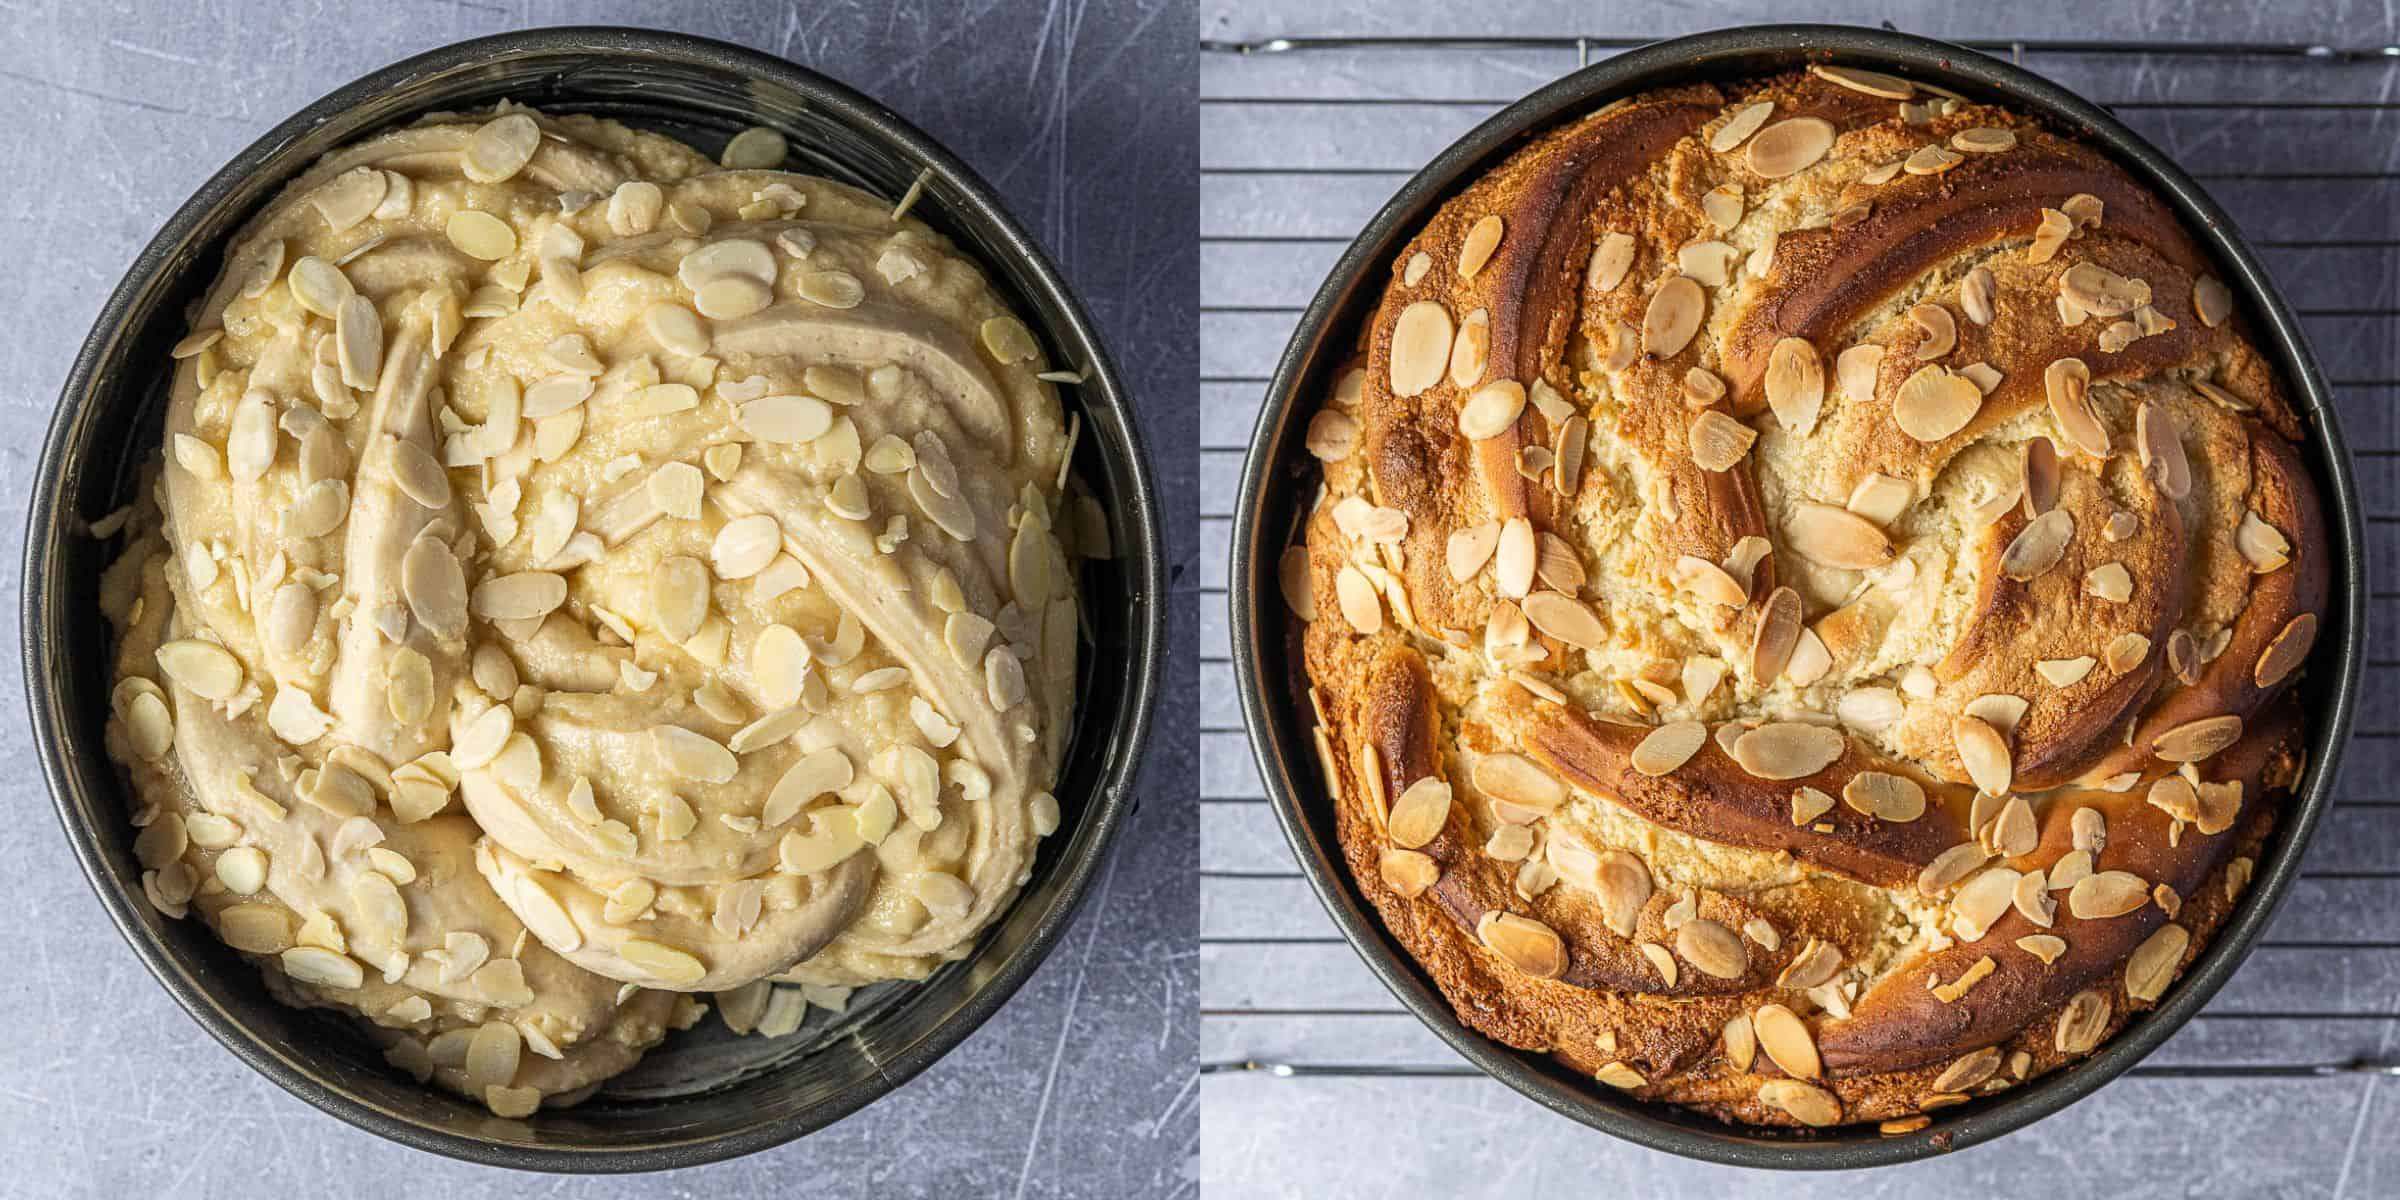 Step 7, a two image collage of the bread before and after baking.